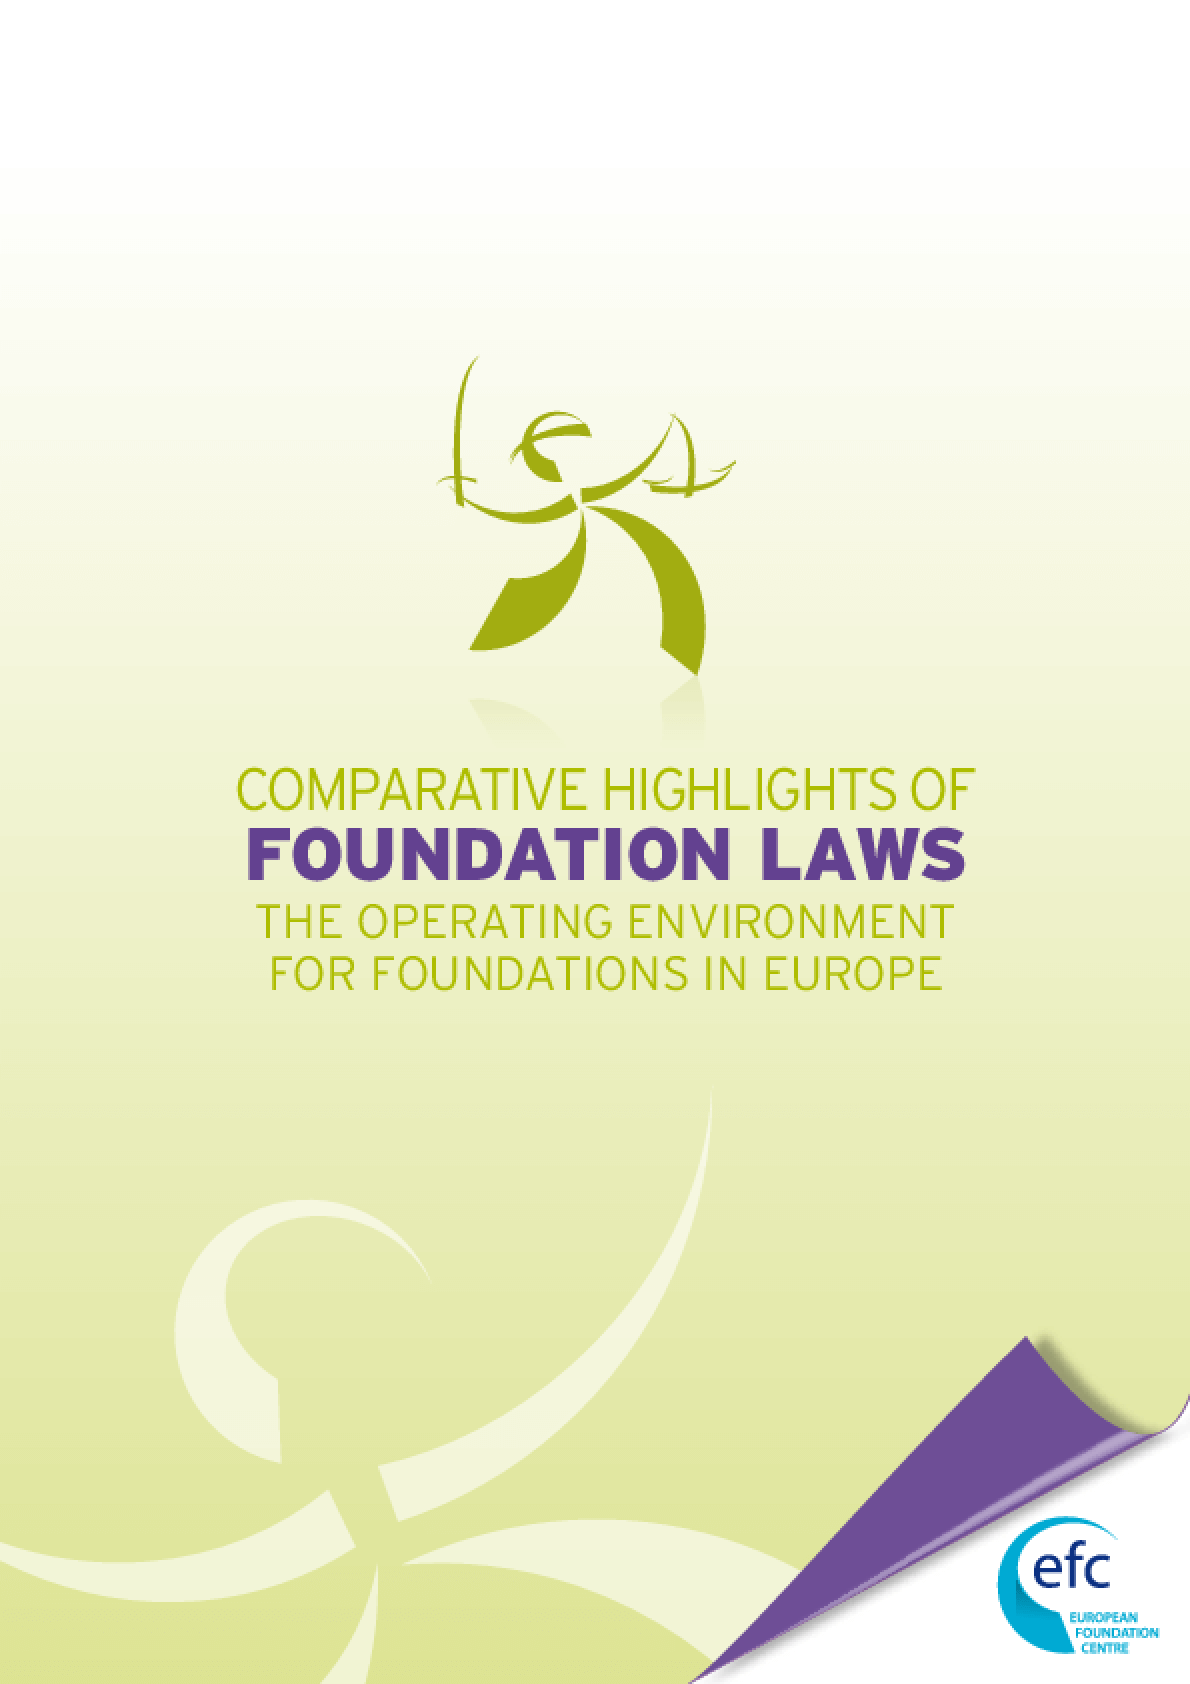 Comparative Highlights of Foundation Laws: The Operating Environment for Foundations in Europe 2011